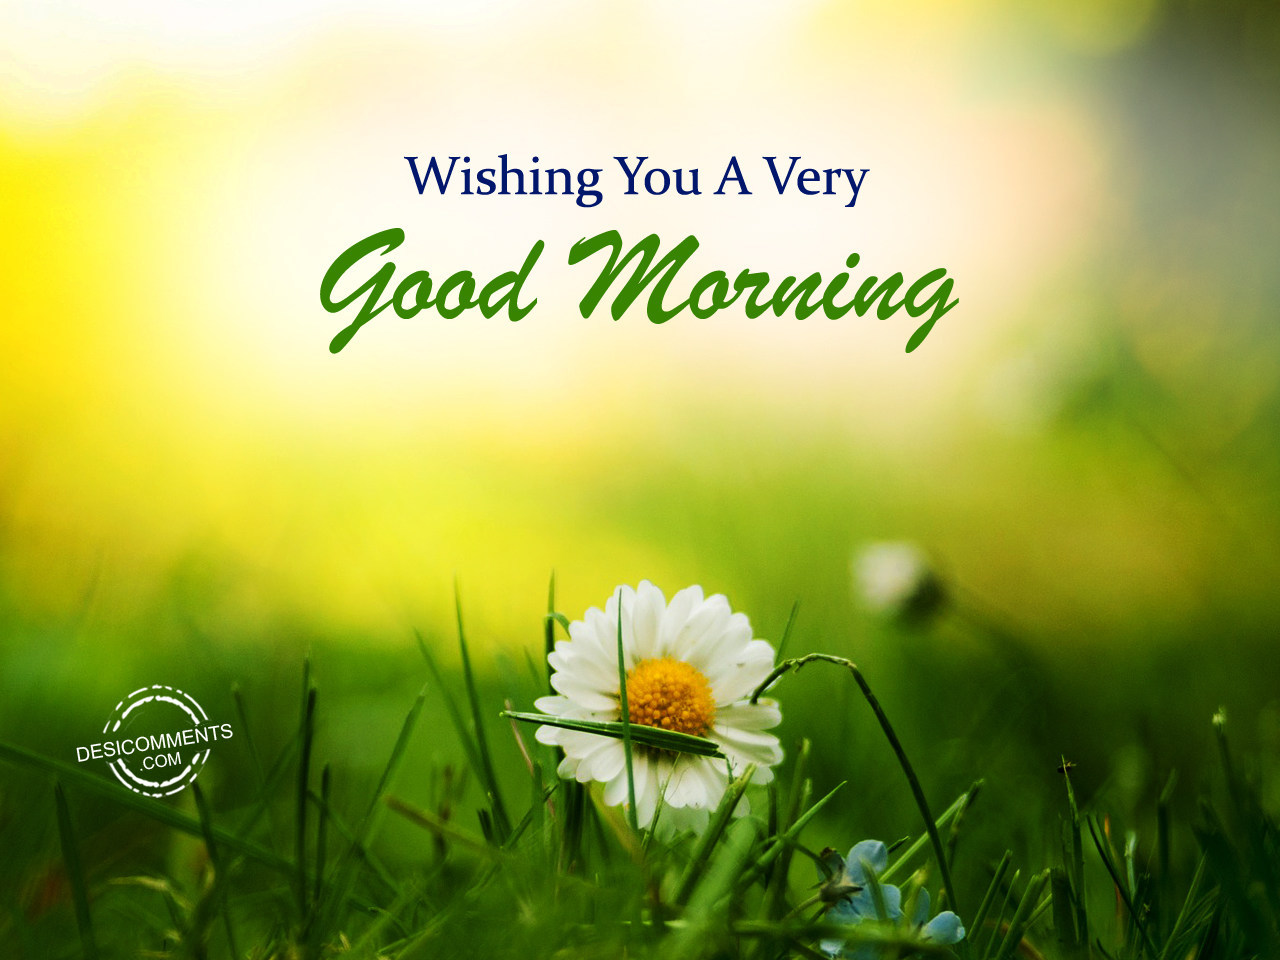 Wishing You A Very Good Morning - DesiComments.com